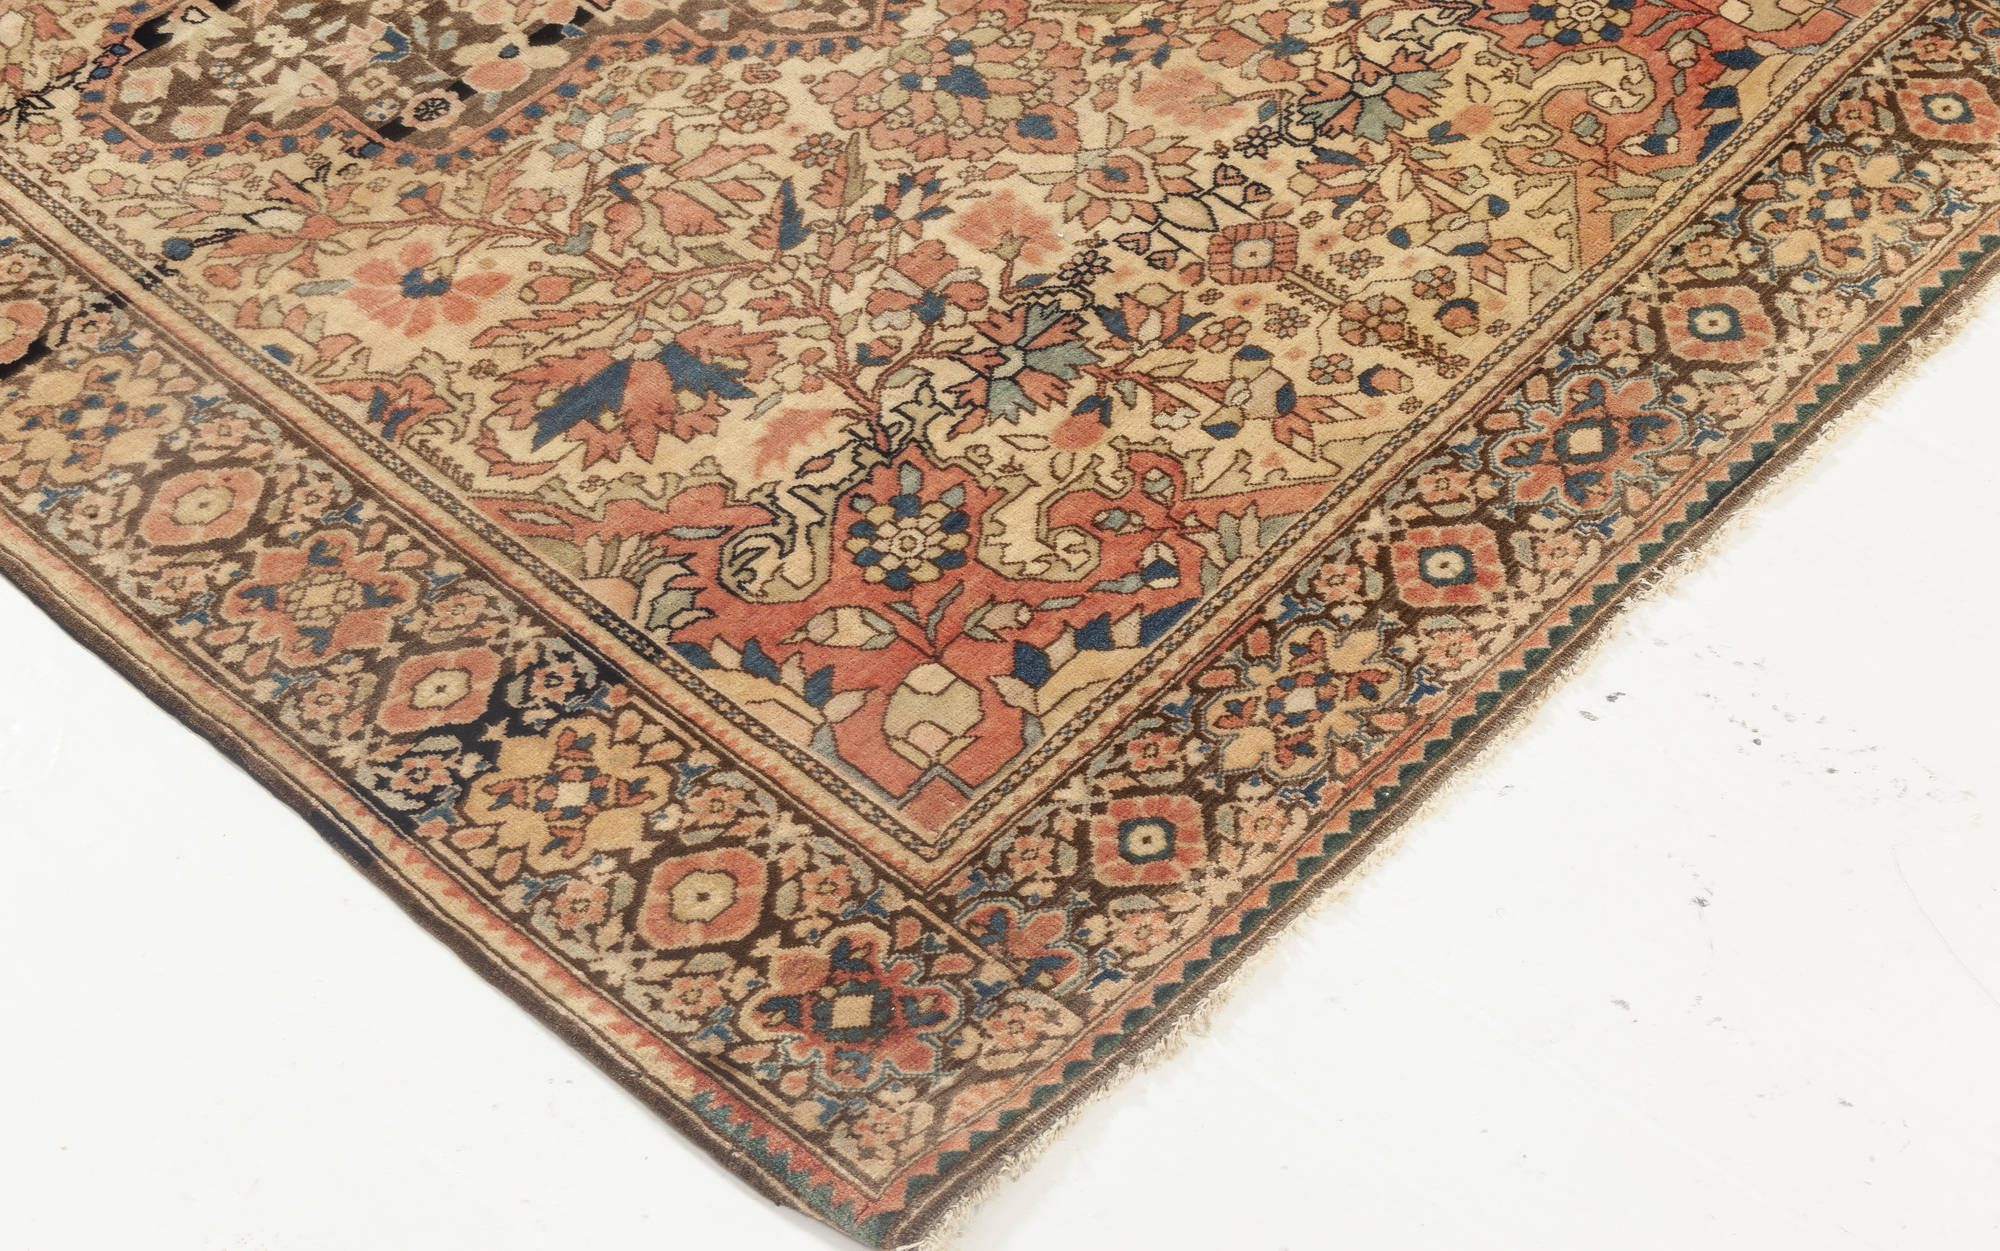 Antique Persian Tabriz Brown, Pink and Red Handwoven Wool Rug BB6928